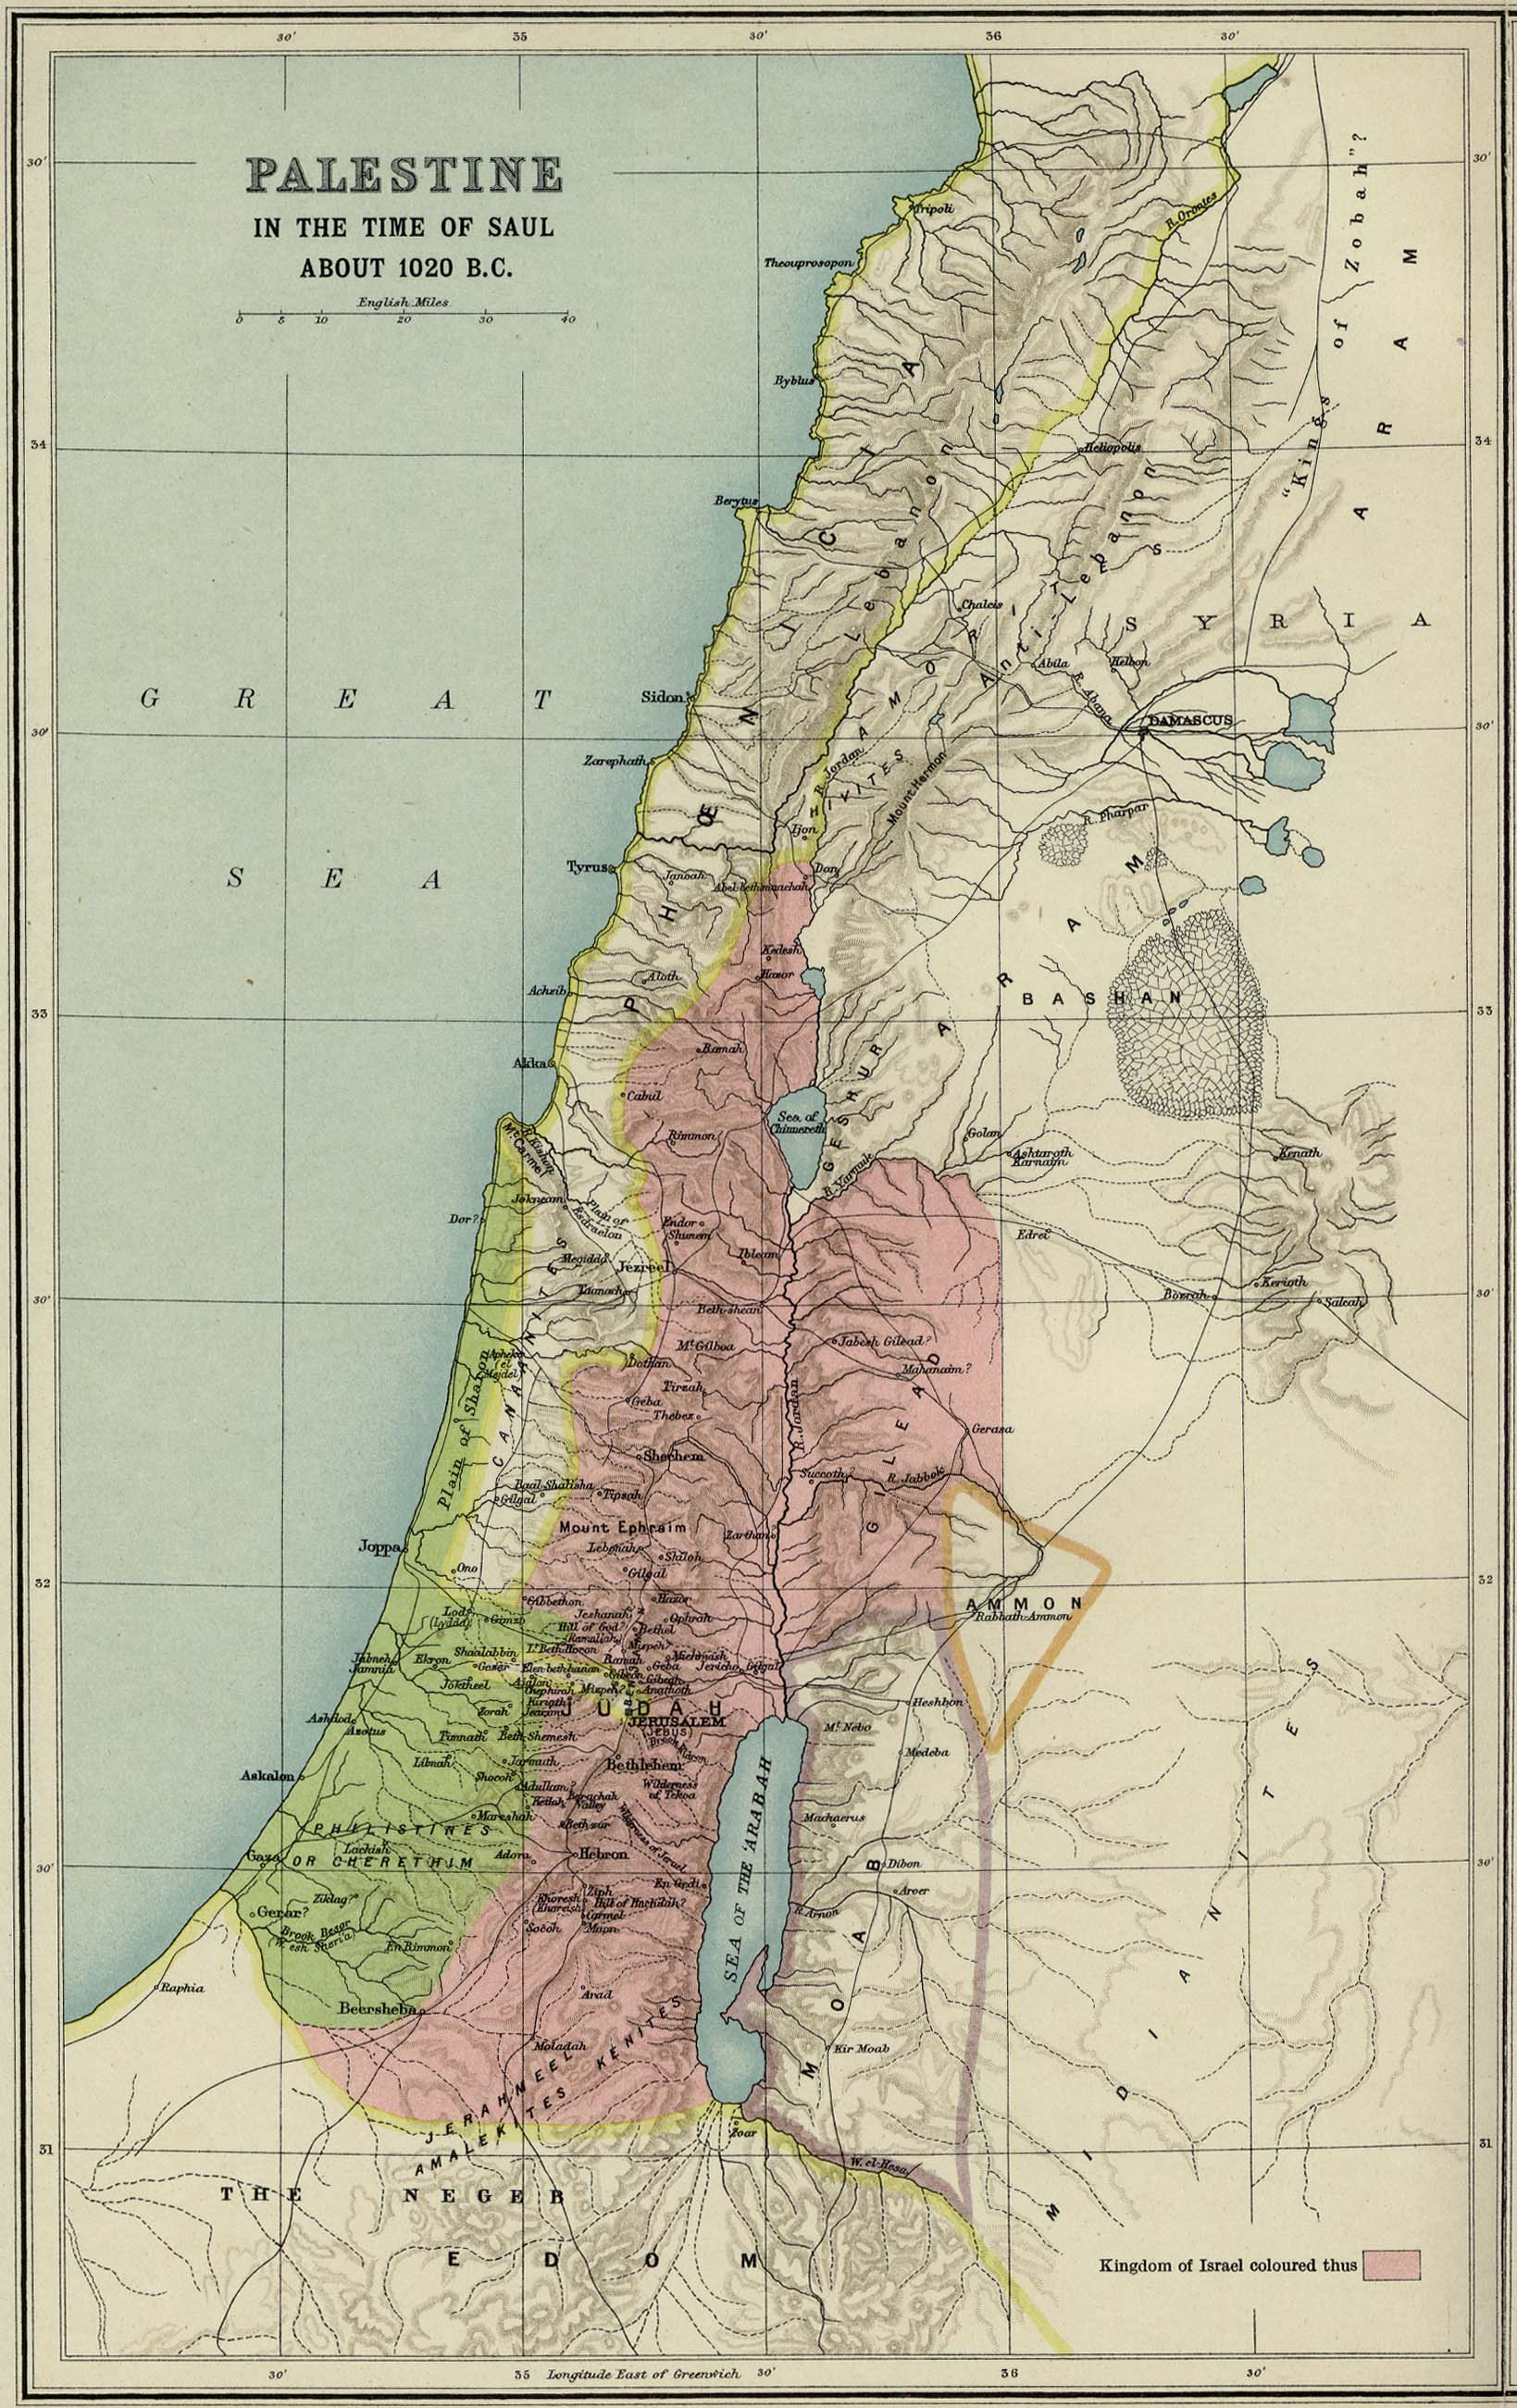 Middle east historical maps perry castaeda map collection ut palestine 1020 bc gumiabroncs Gallery